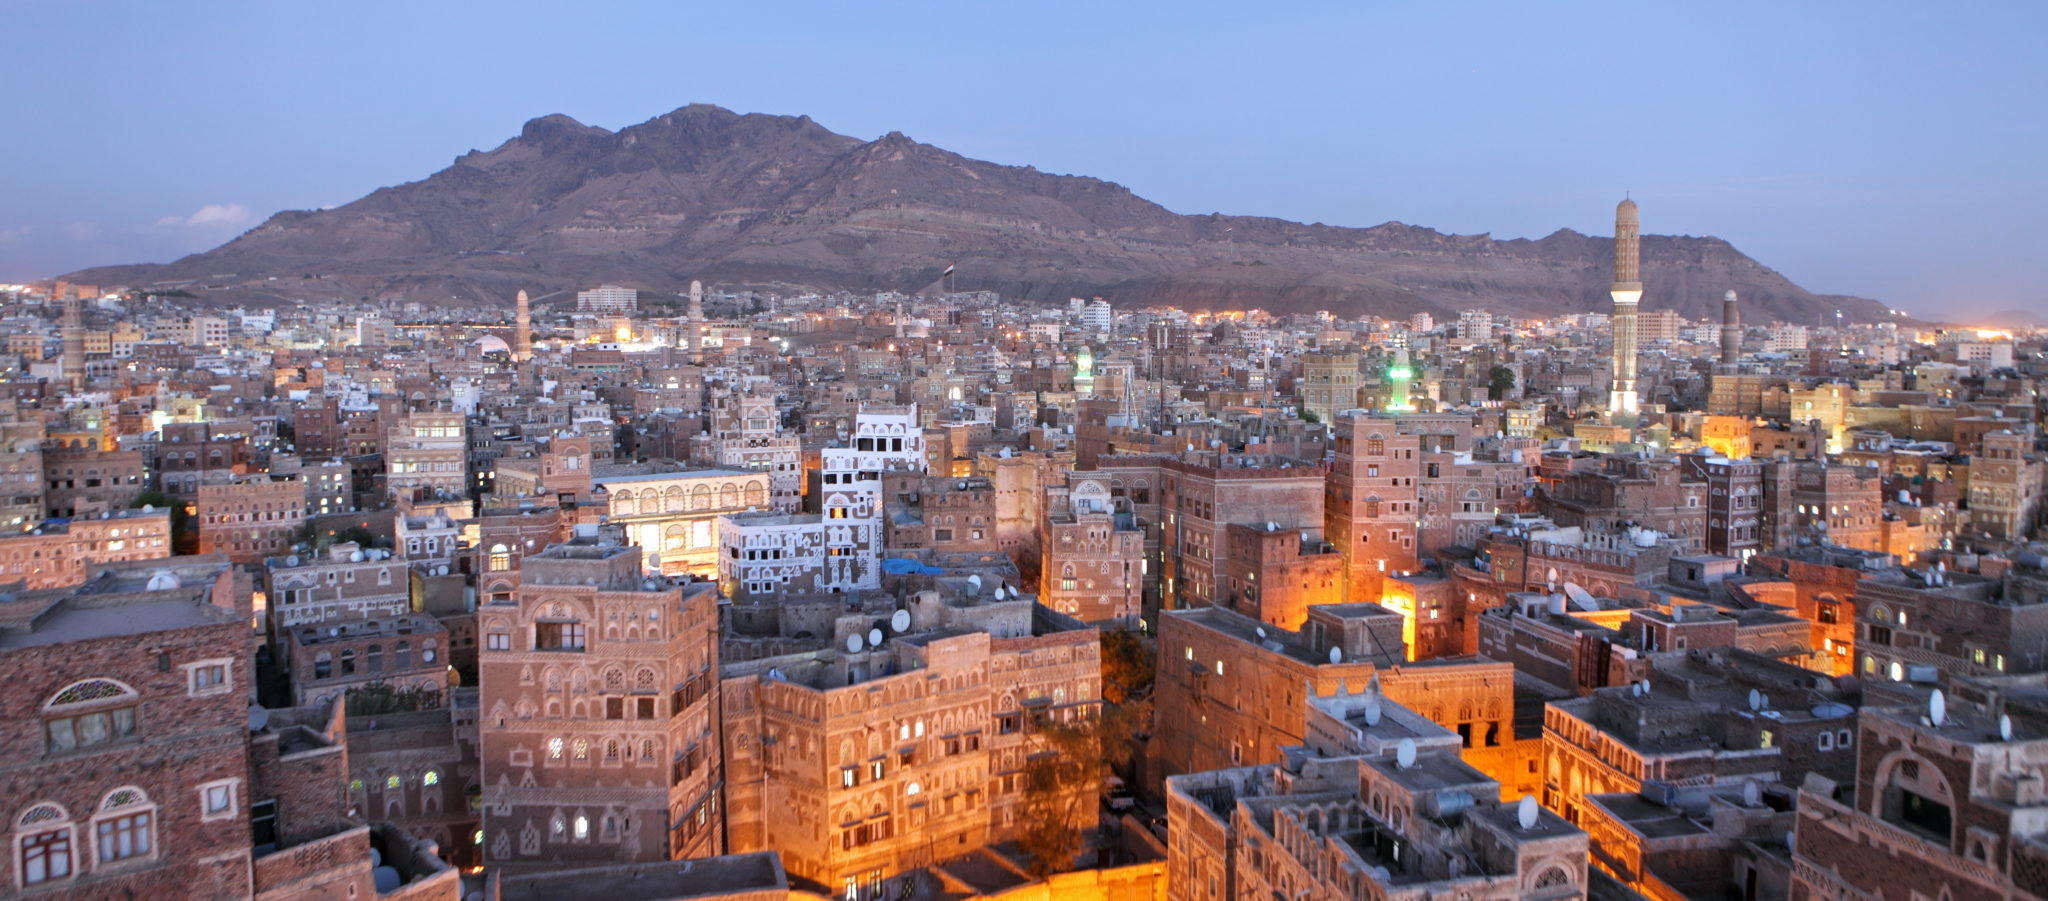 With the ISIS Caliphate Defeated in Syria, an Islamist Militant Rivalry Takes Root in Yemen